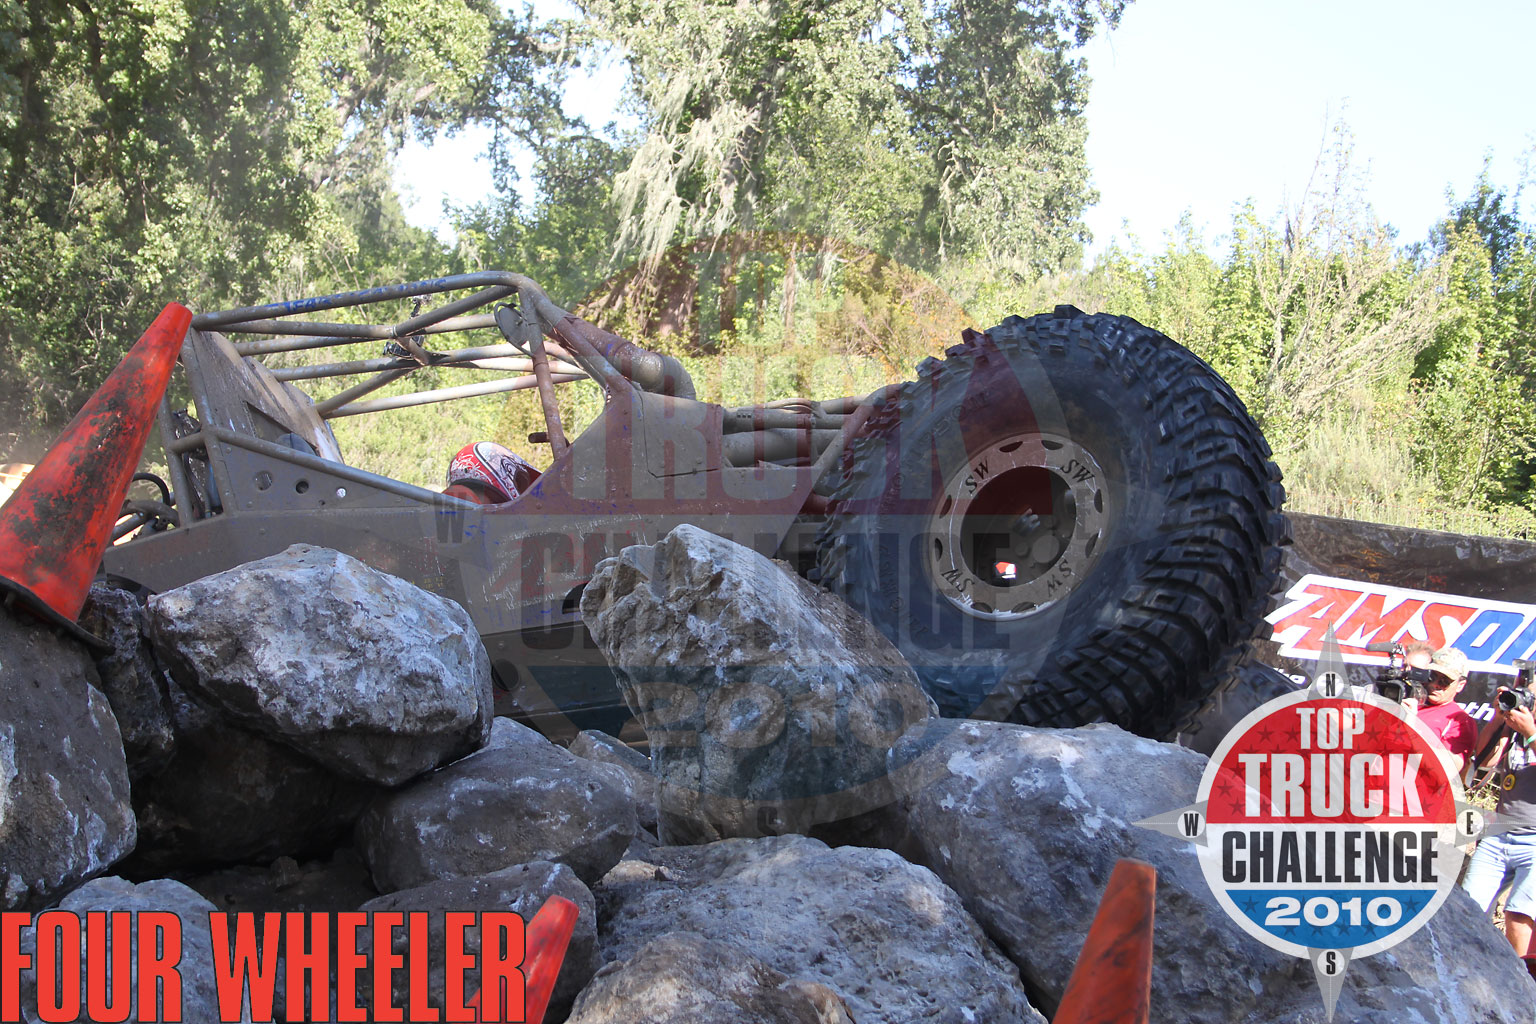 129 1006 4864+2010 top truck challenge mini rubicon+joe quichocho tube chassis cj7 buggy